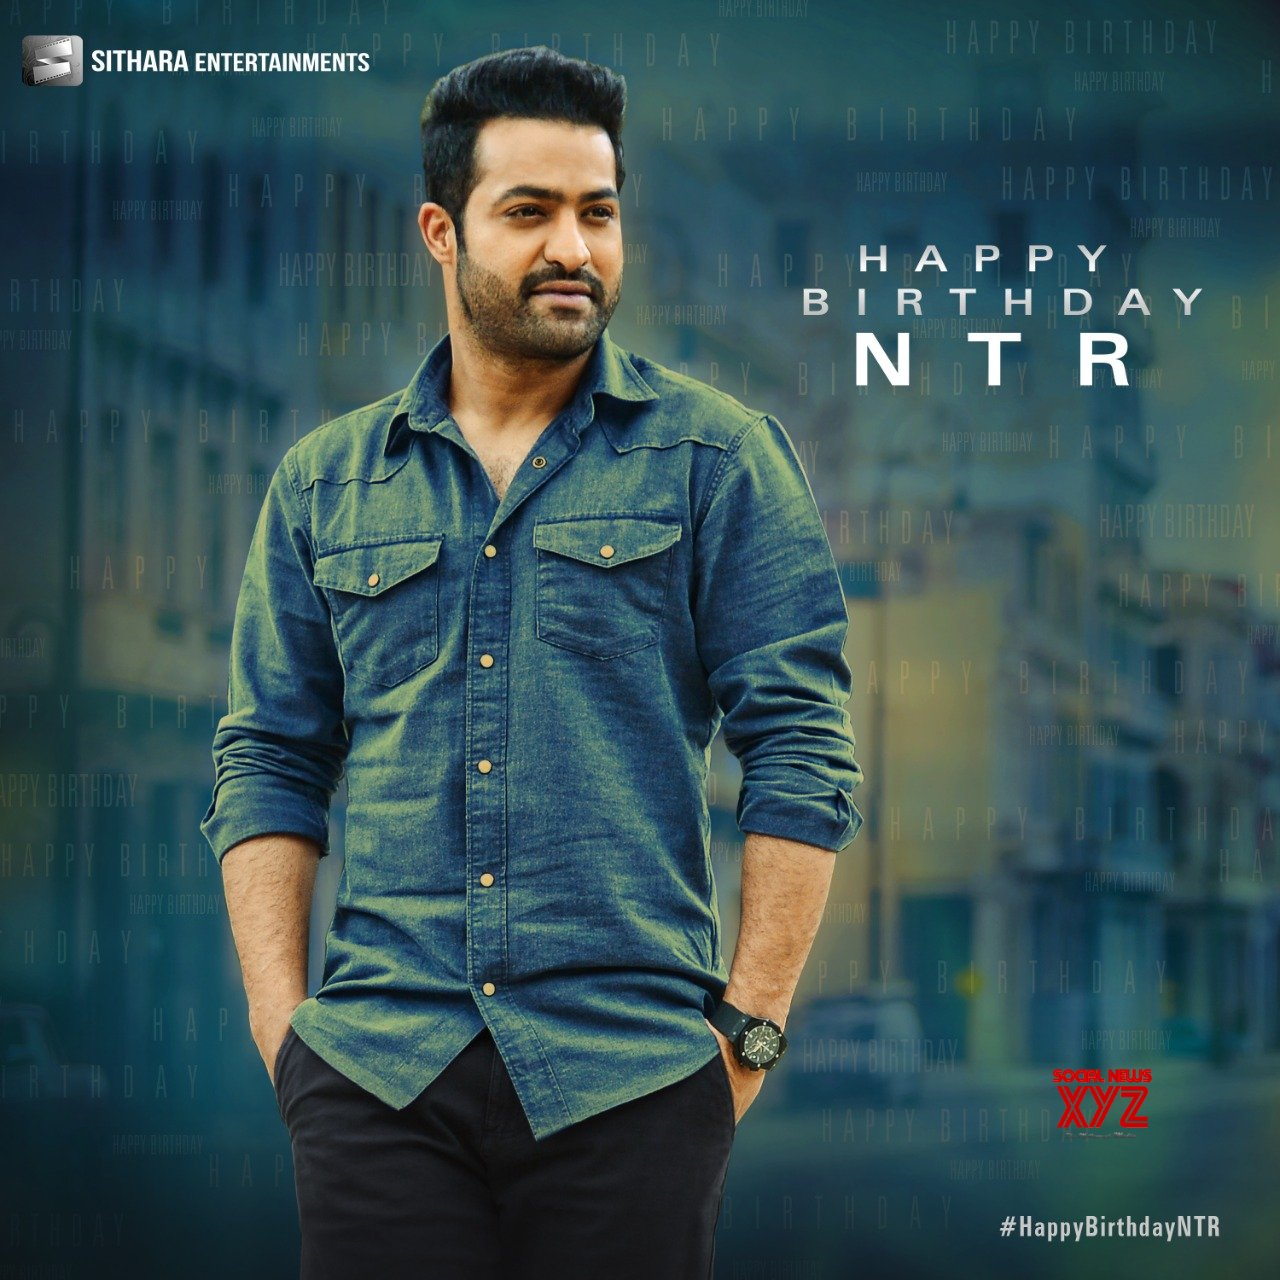 NTR Birthday 2020 Wishes Posters Set 2